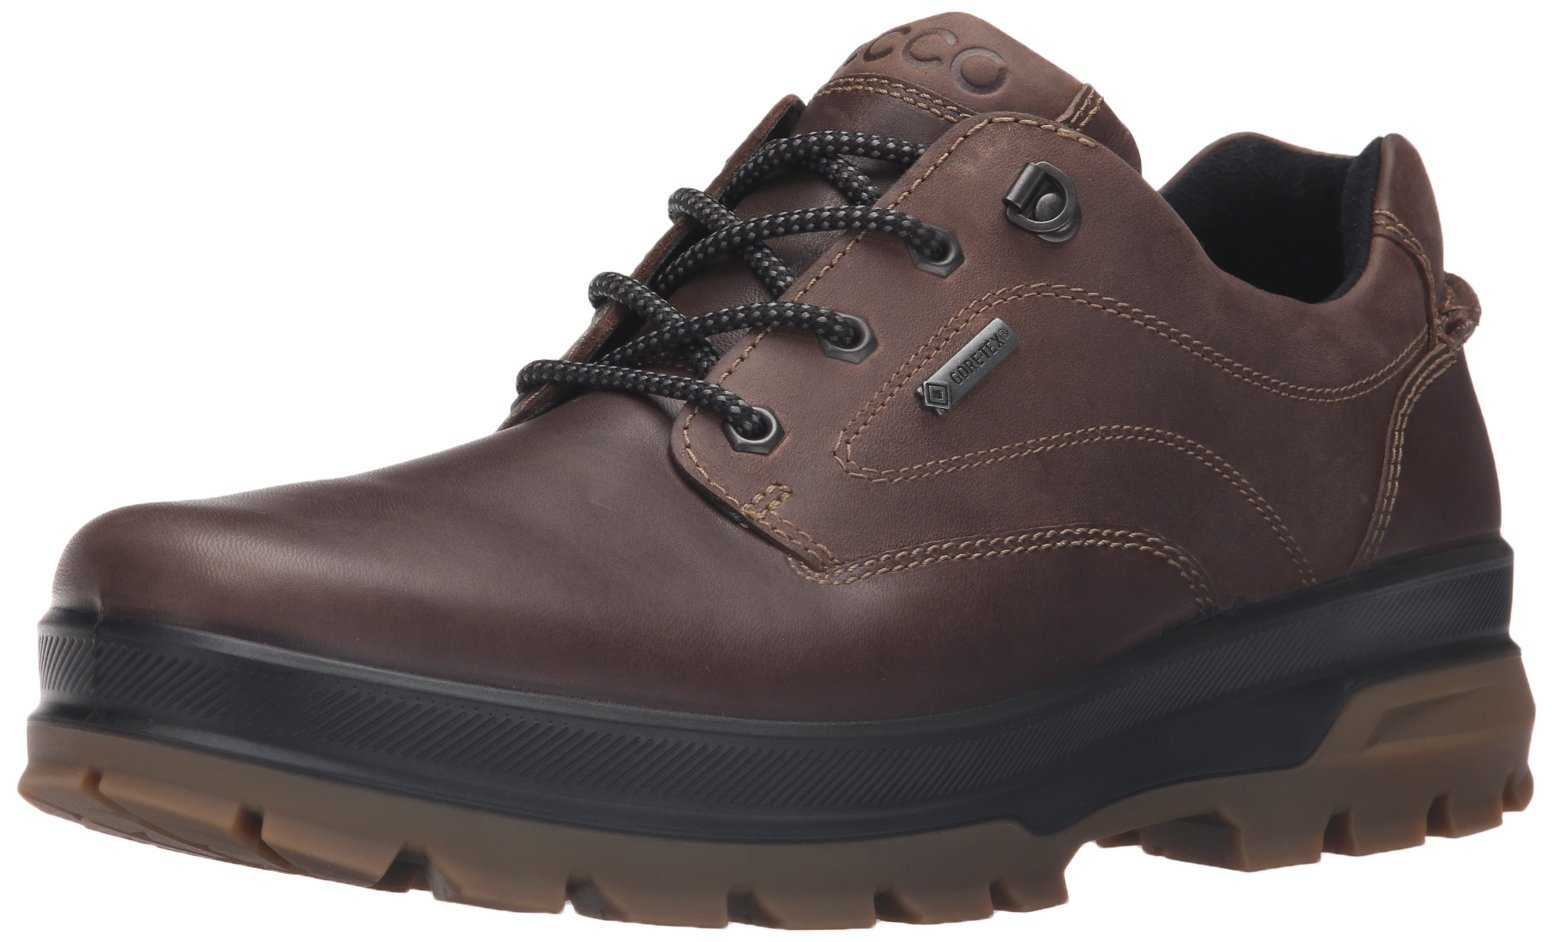 ECCO Men's Rugged Track GTX Tie-M Dark Clay/Coffee 43 EU/9-9.5 M US